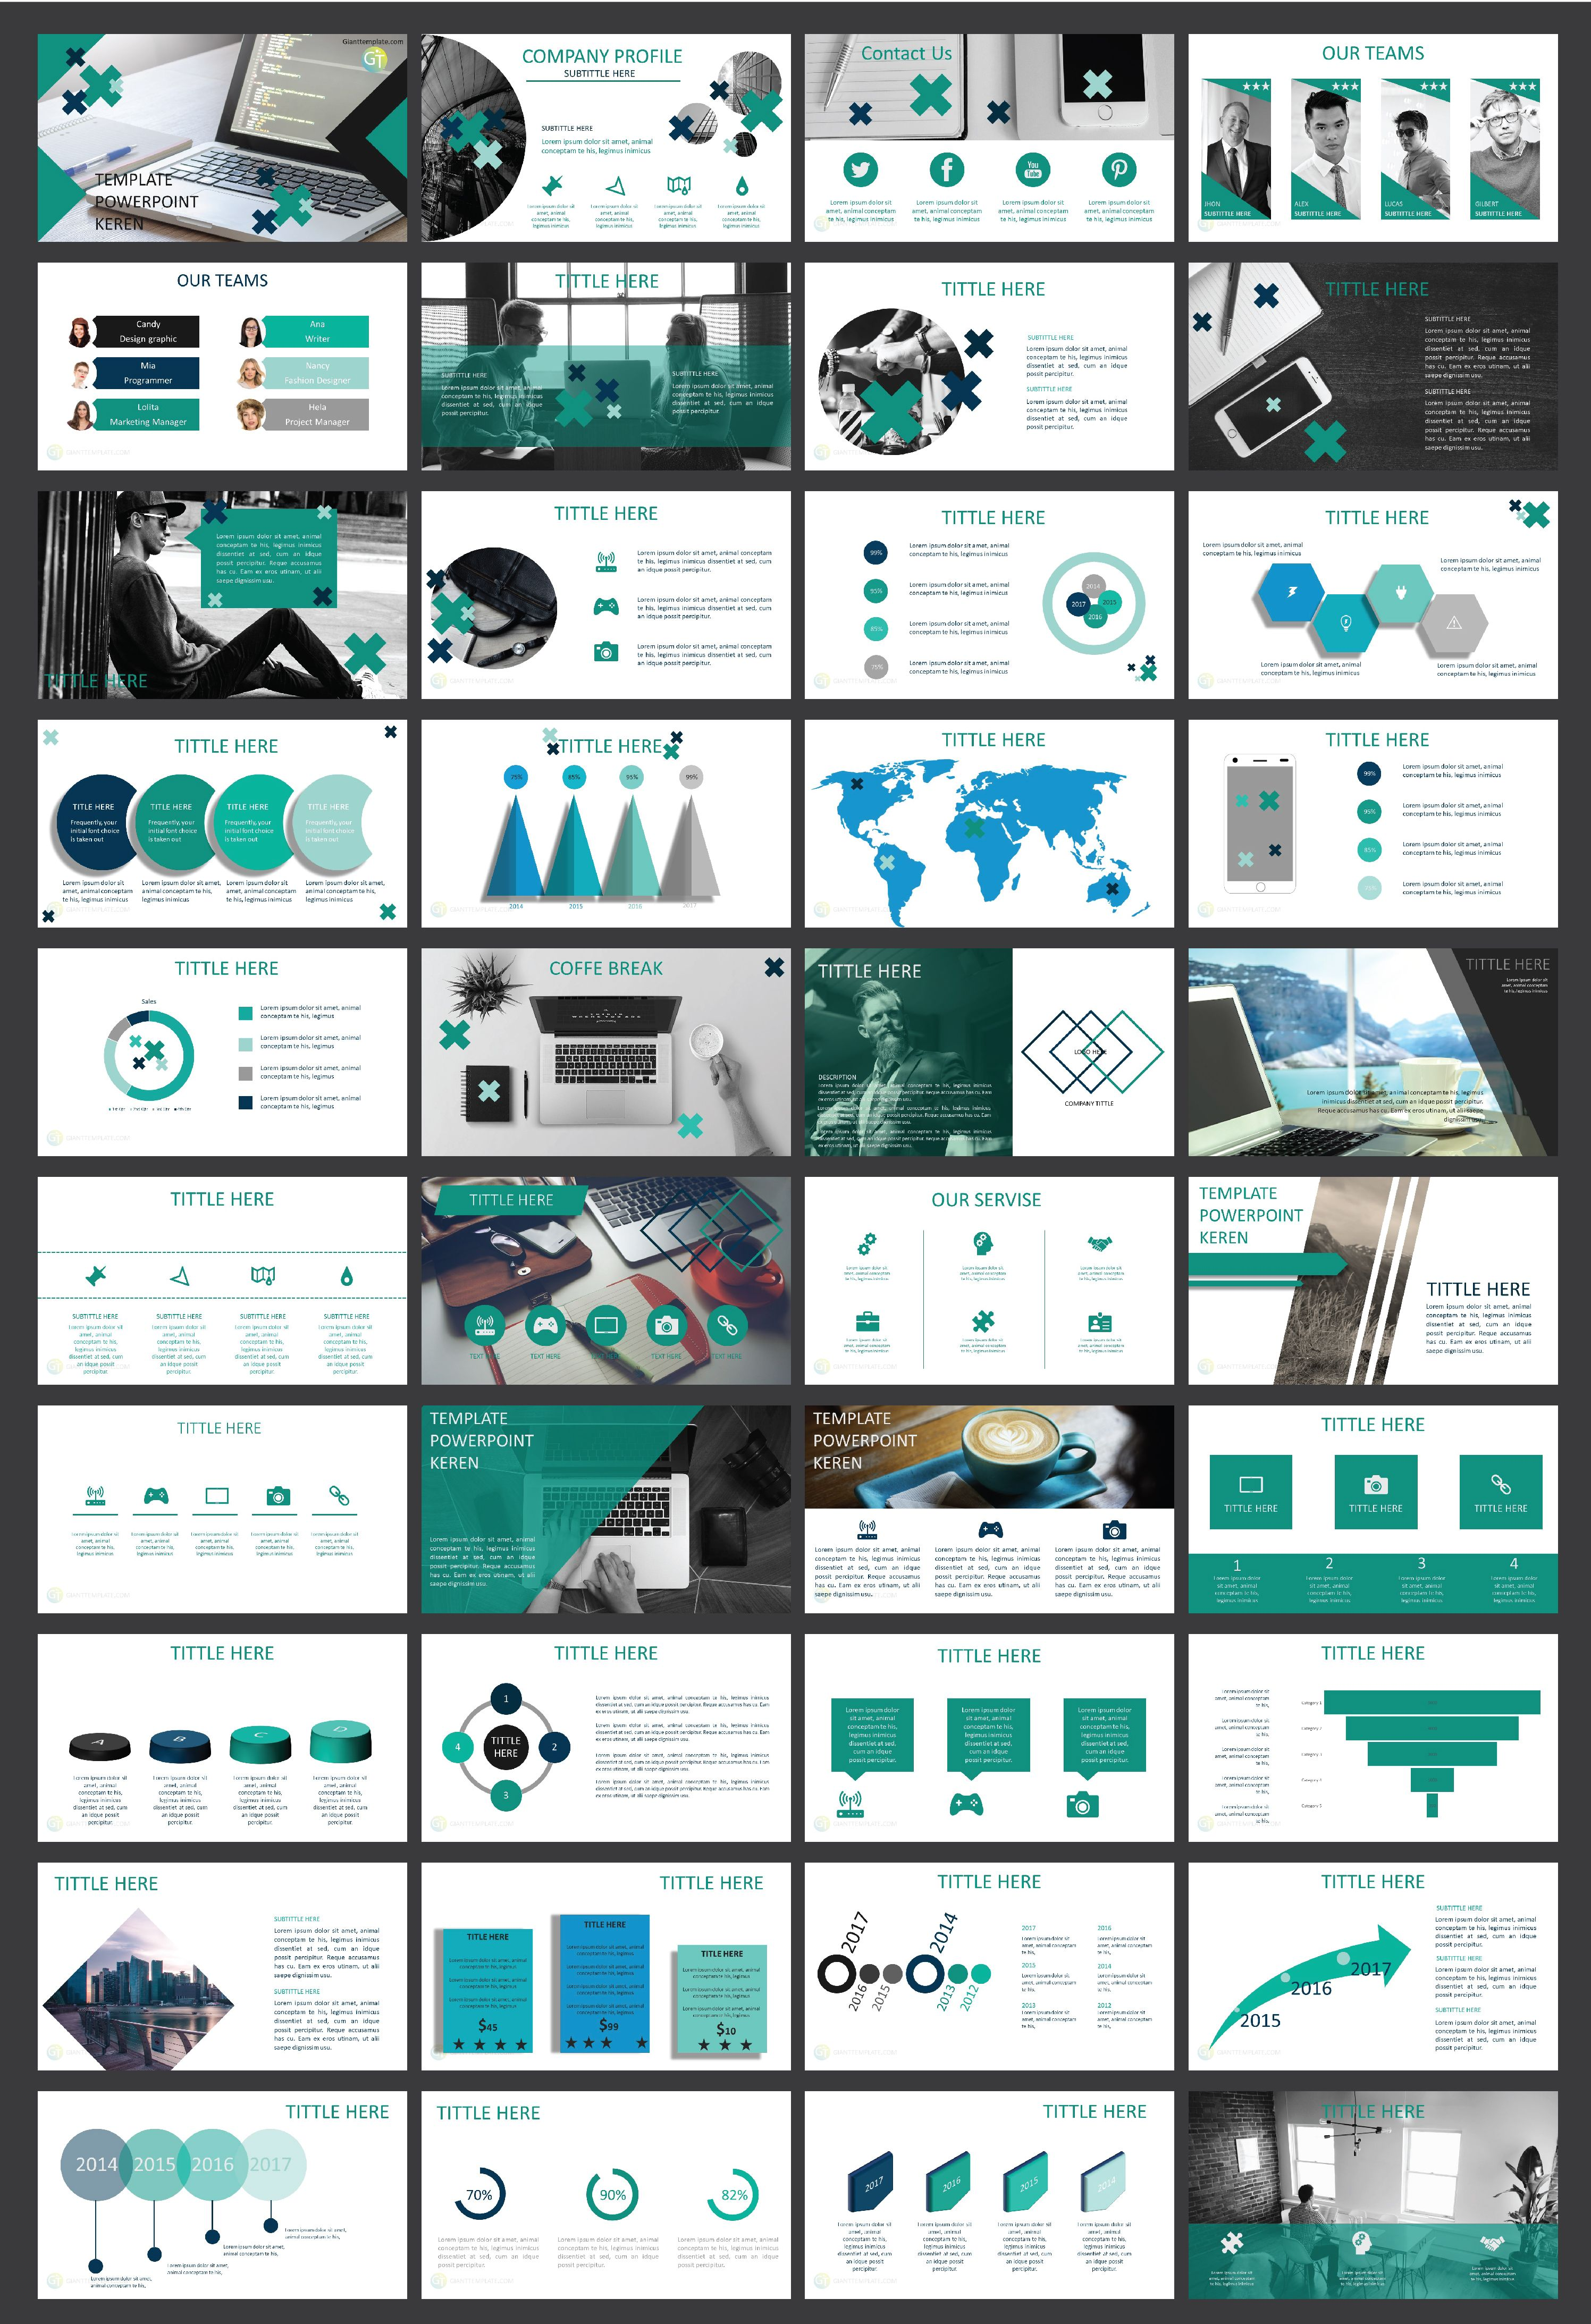 18+ FREE Microsoft PowerPoint (PPT) Templates   Template.net